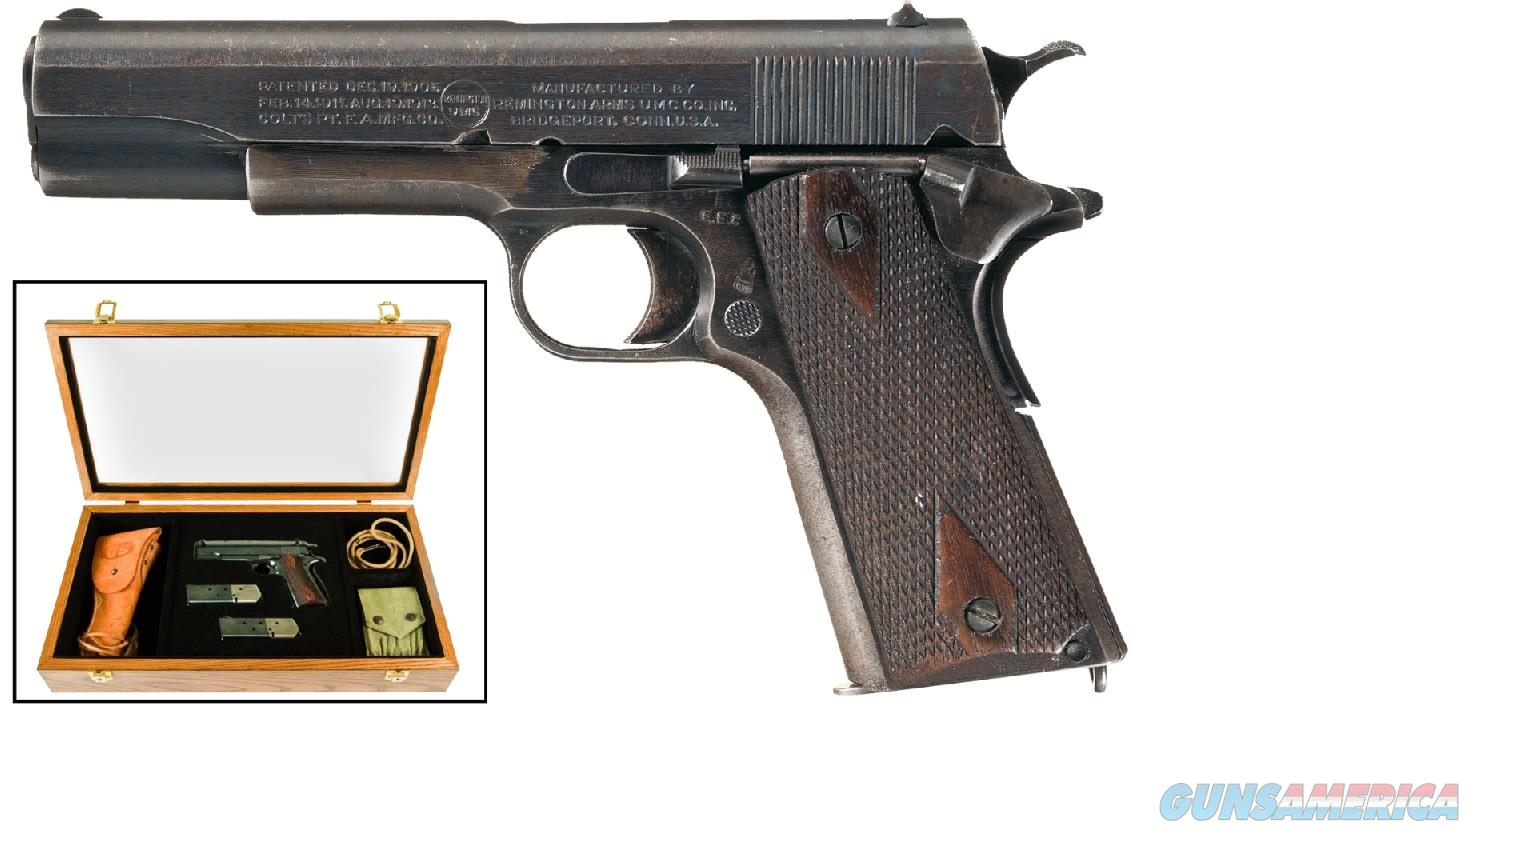 "96367 Remington 1911 UMC Commemorative SAO 5"" - 45acp  Guns > Pistols > Remington Pistols - Modern > 1911"